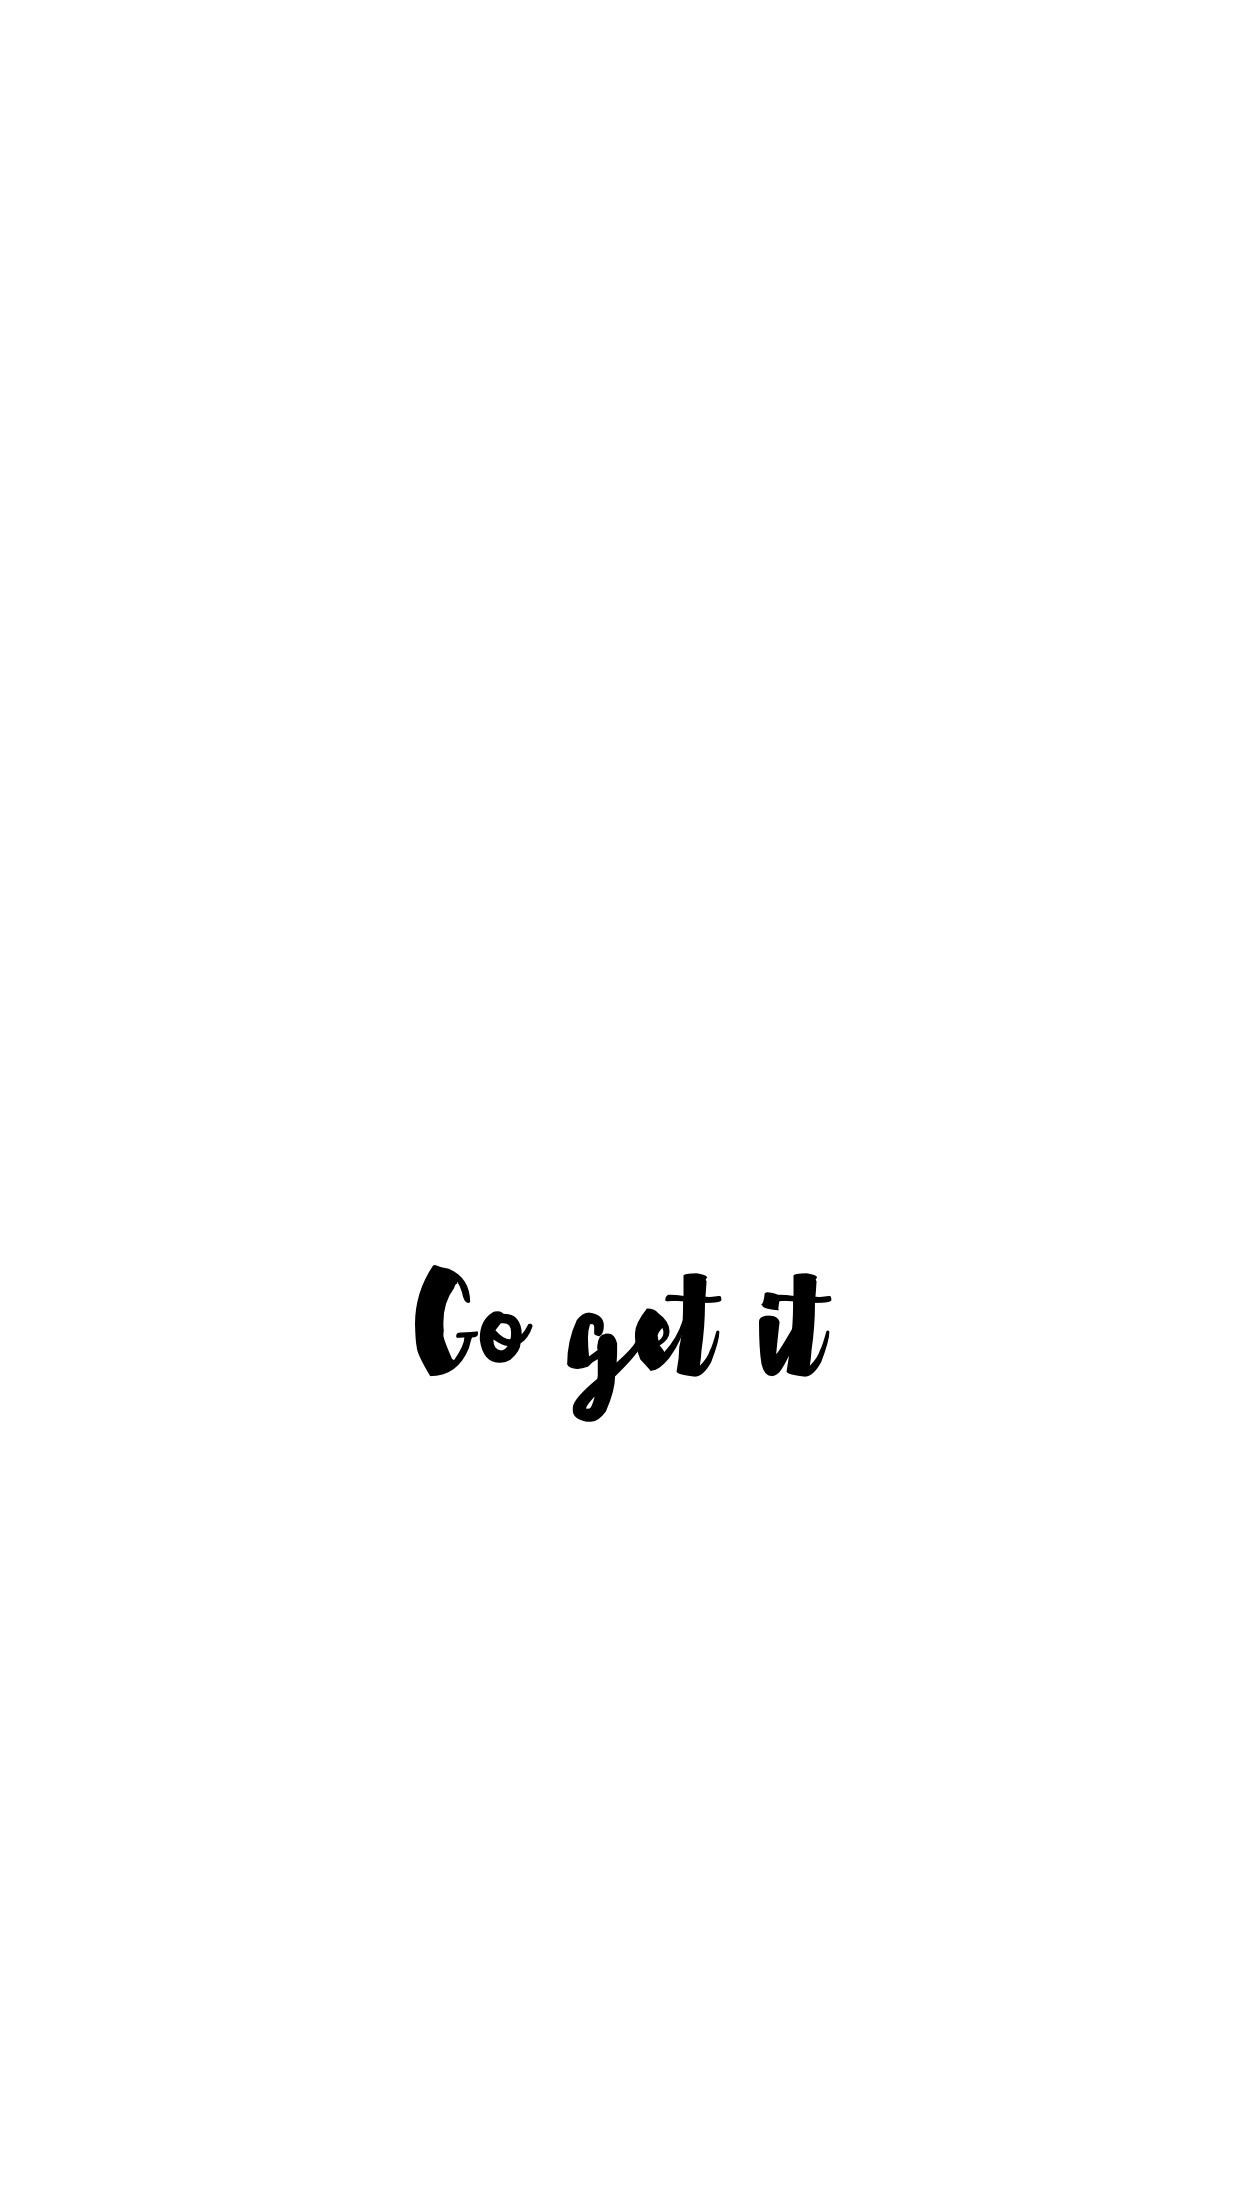 quote, inspiration, wallpaper, background, minimal, white, black, simple,